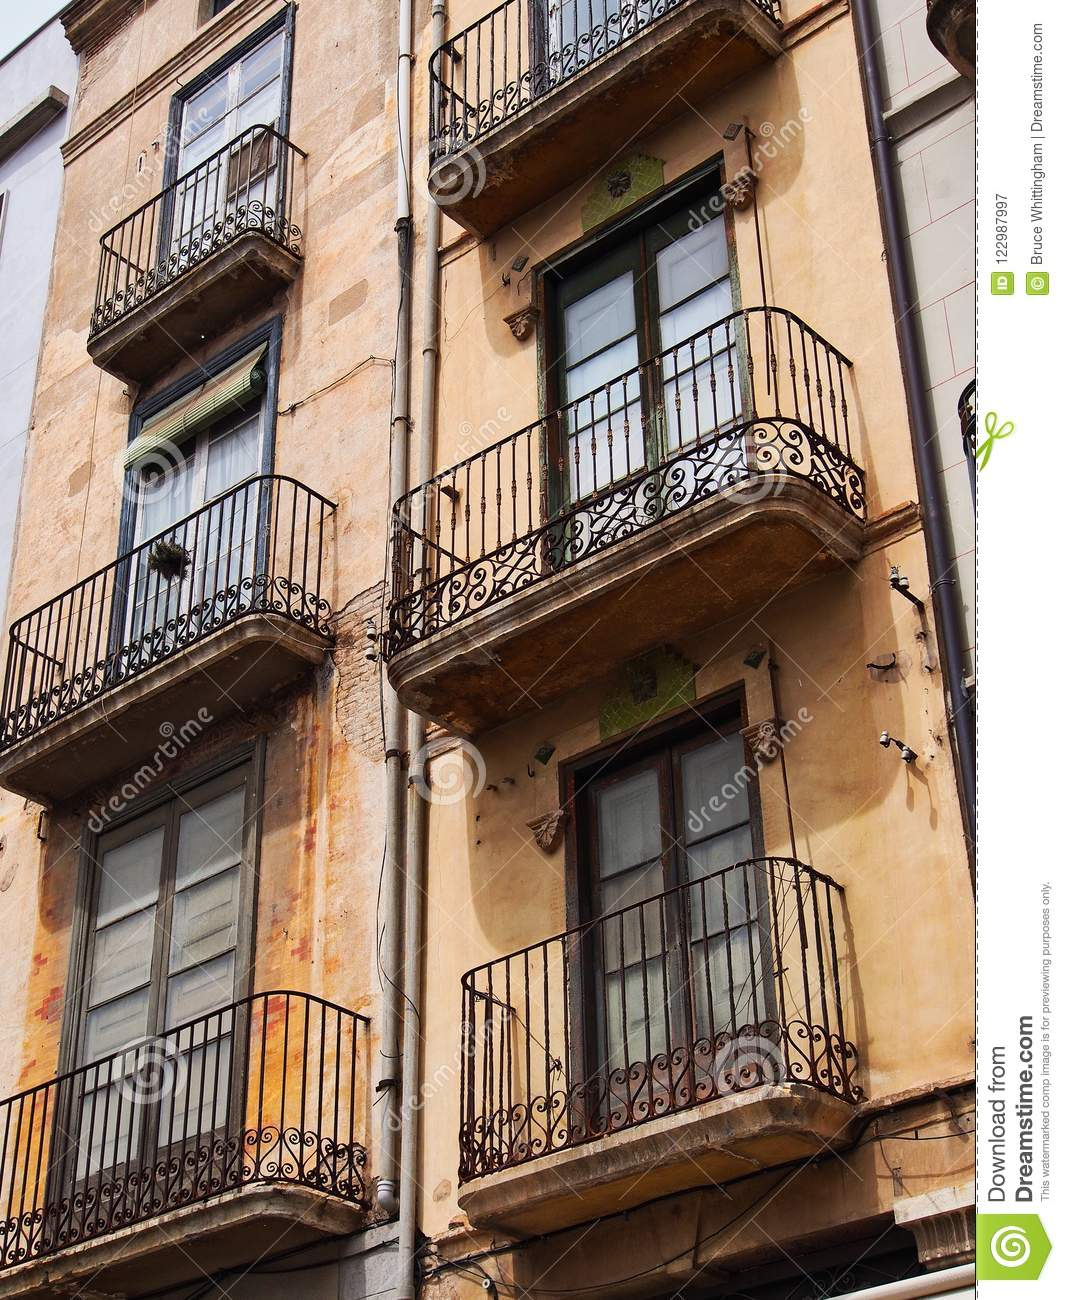 Old Brick Apartment Building: Historic Stucco Apartment Building, Figueres, Spain Stock